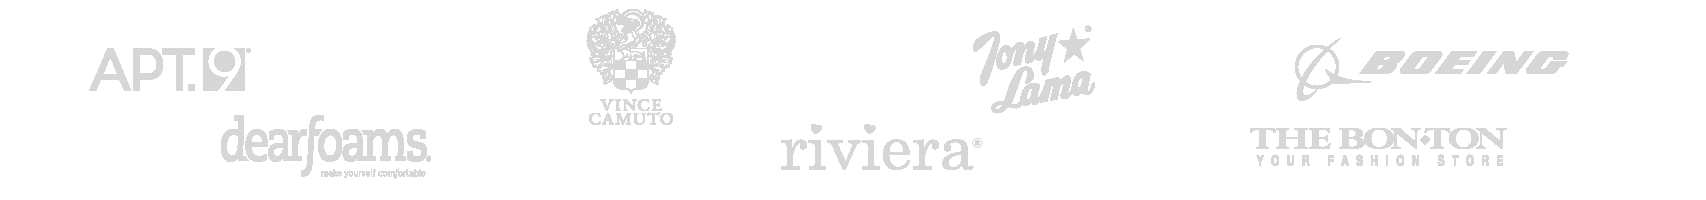 logo banner_Page_4